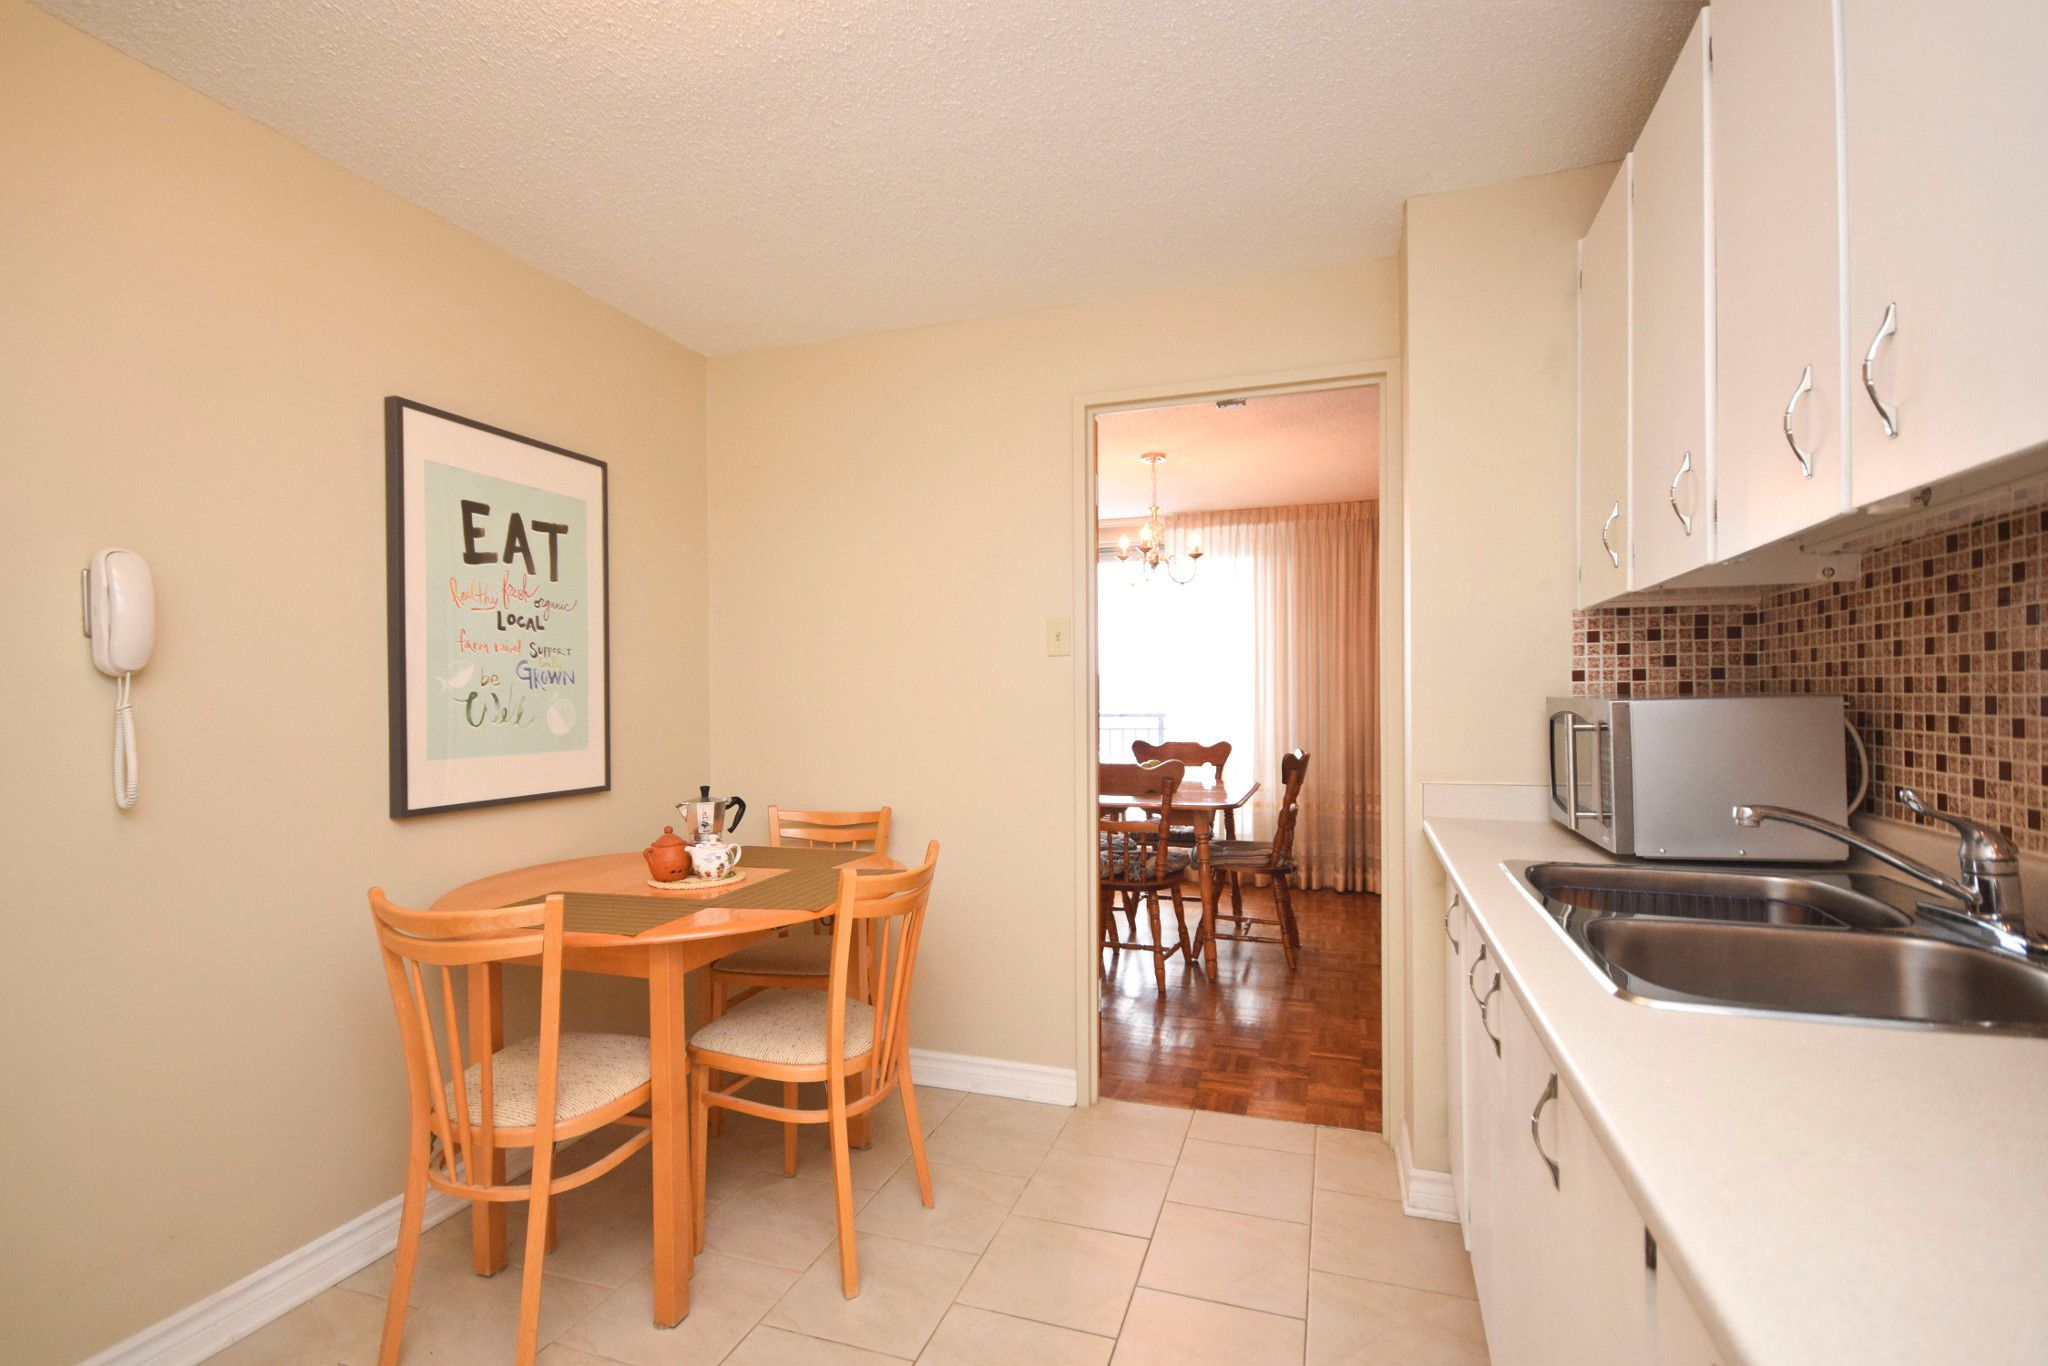 Photo 24: Photos: 515 1465 BASELINE Road in Ottawa: Copeland Park House for sale : MLS®# 1133550